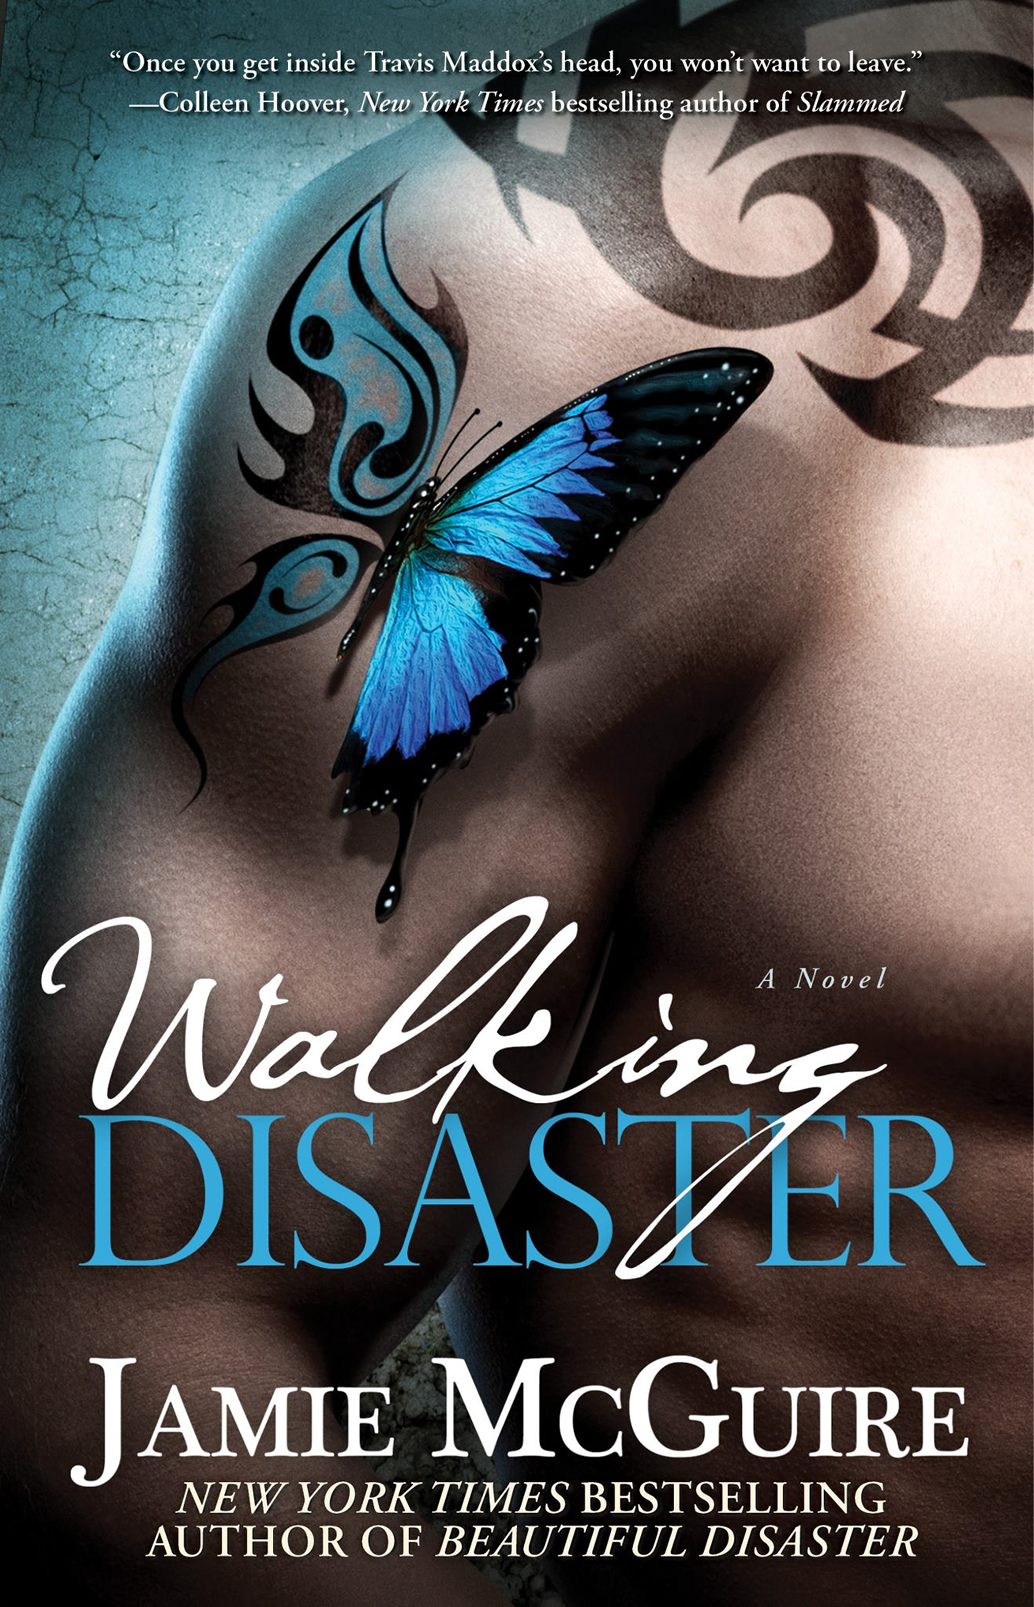 Walking Disaster Cover Reveal!!!